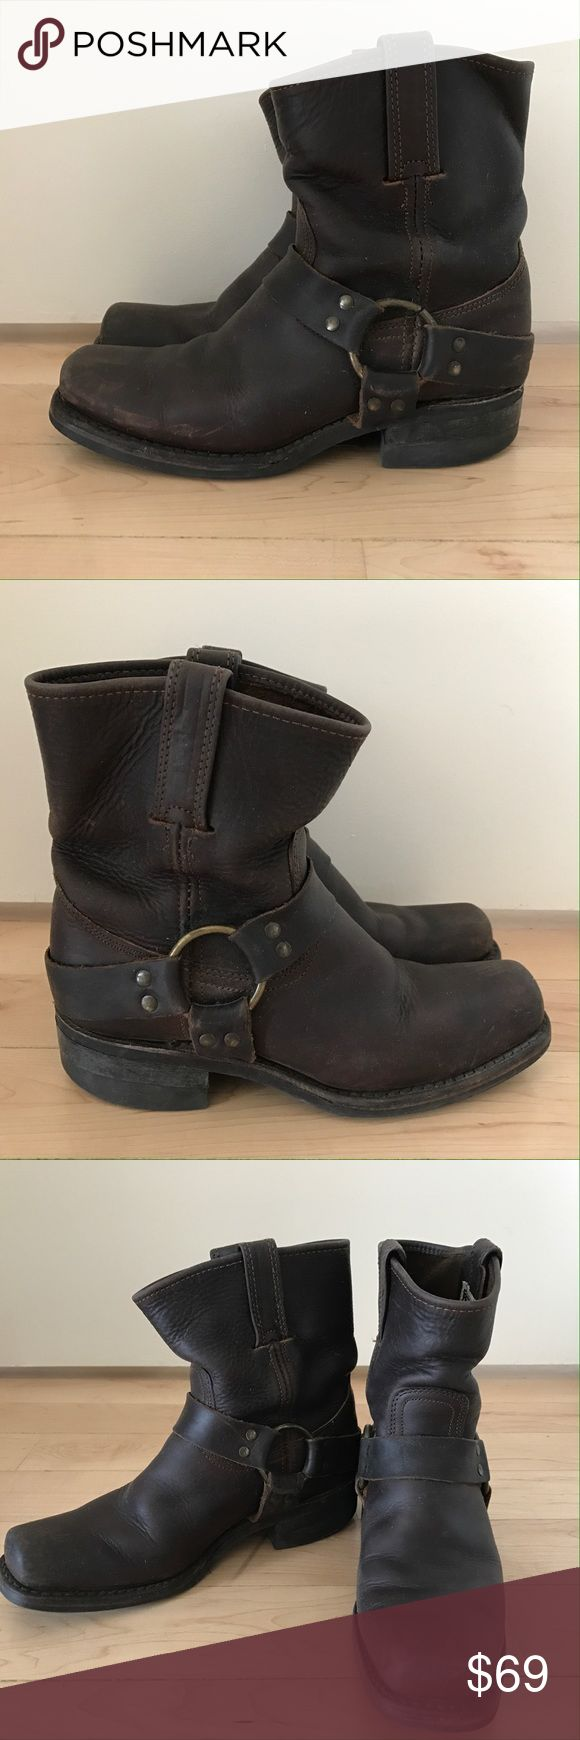 FRYE WOMAN 8 M LEATHER HARNESS MOTORCYCLE BOOT These amazing FRYE Biker boots...Square toe HARNESS SHORT BOOT WITH BUCKLE. Frye Shoes Combat & Moto Boots